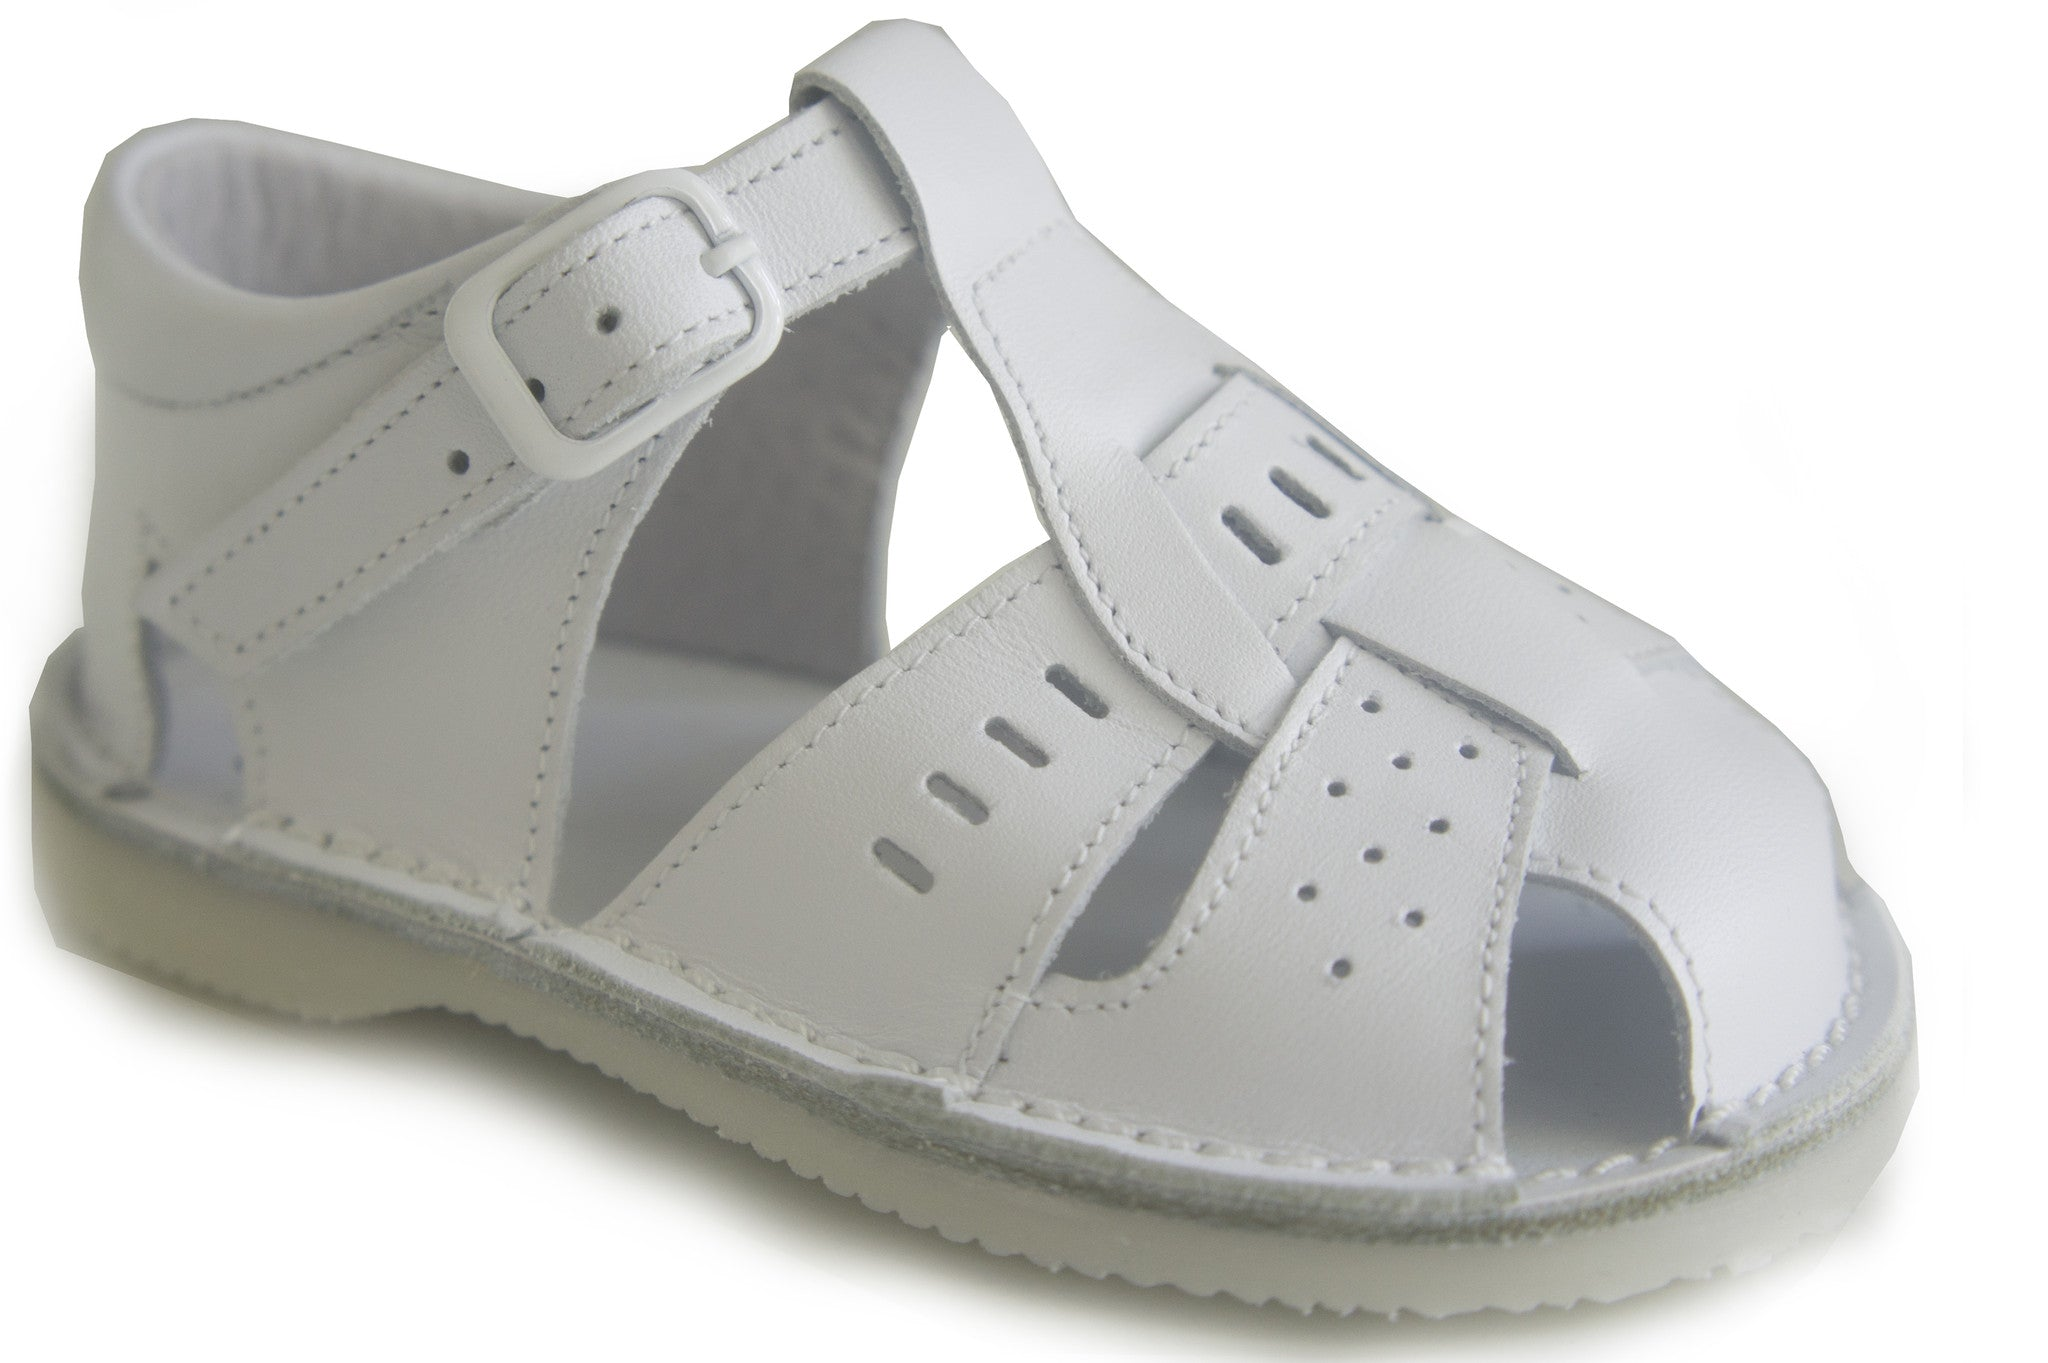 Casual Sandals White for Boys Leather Patucos Shoes for baby and infant